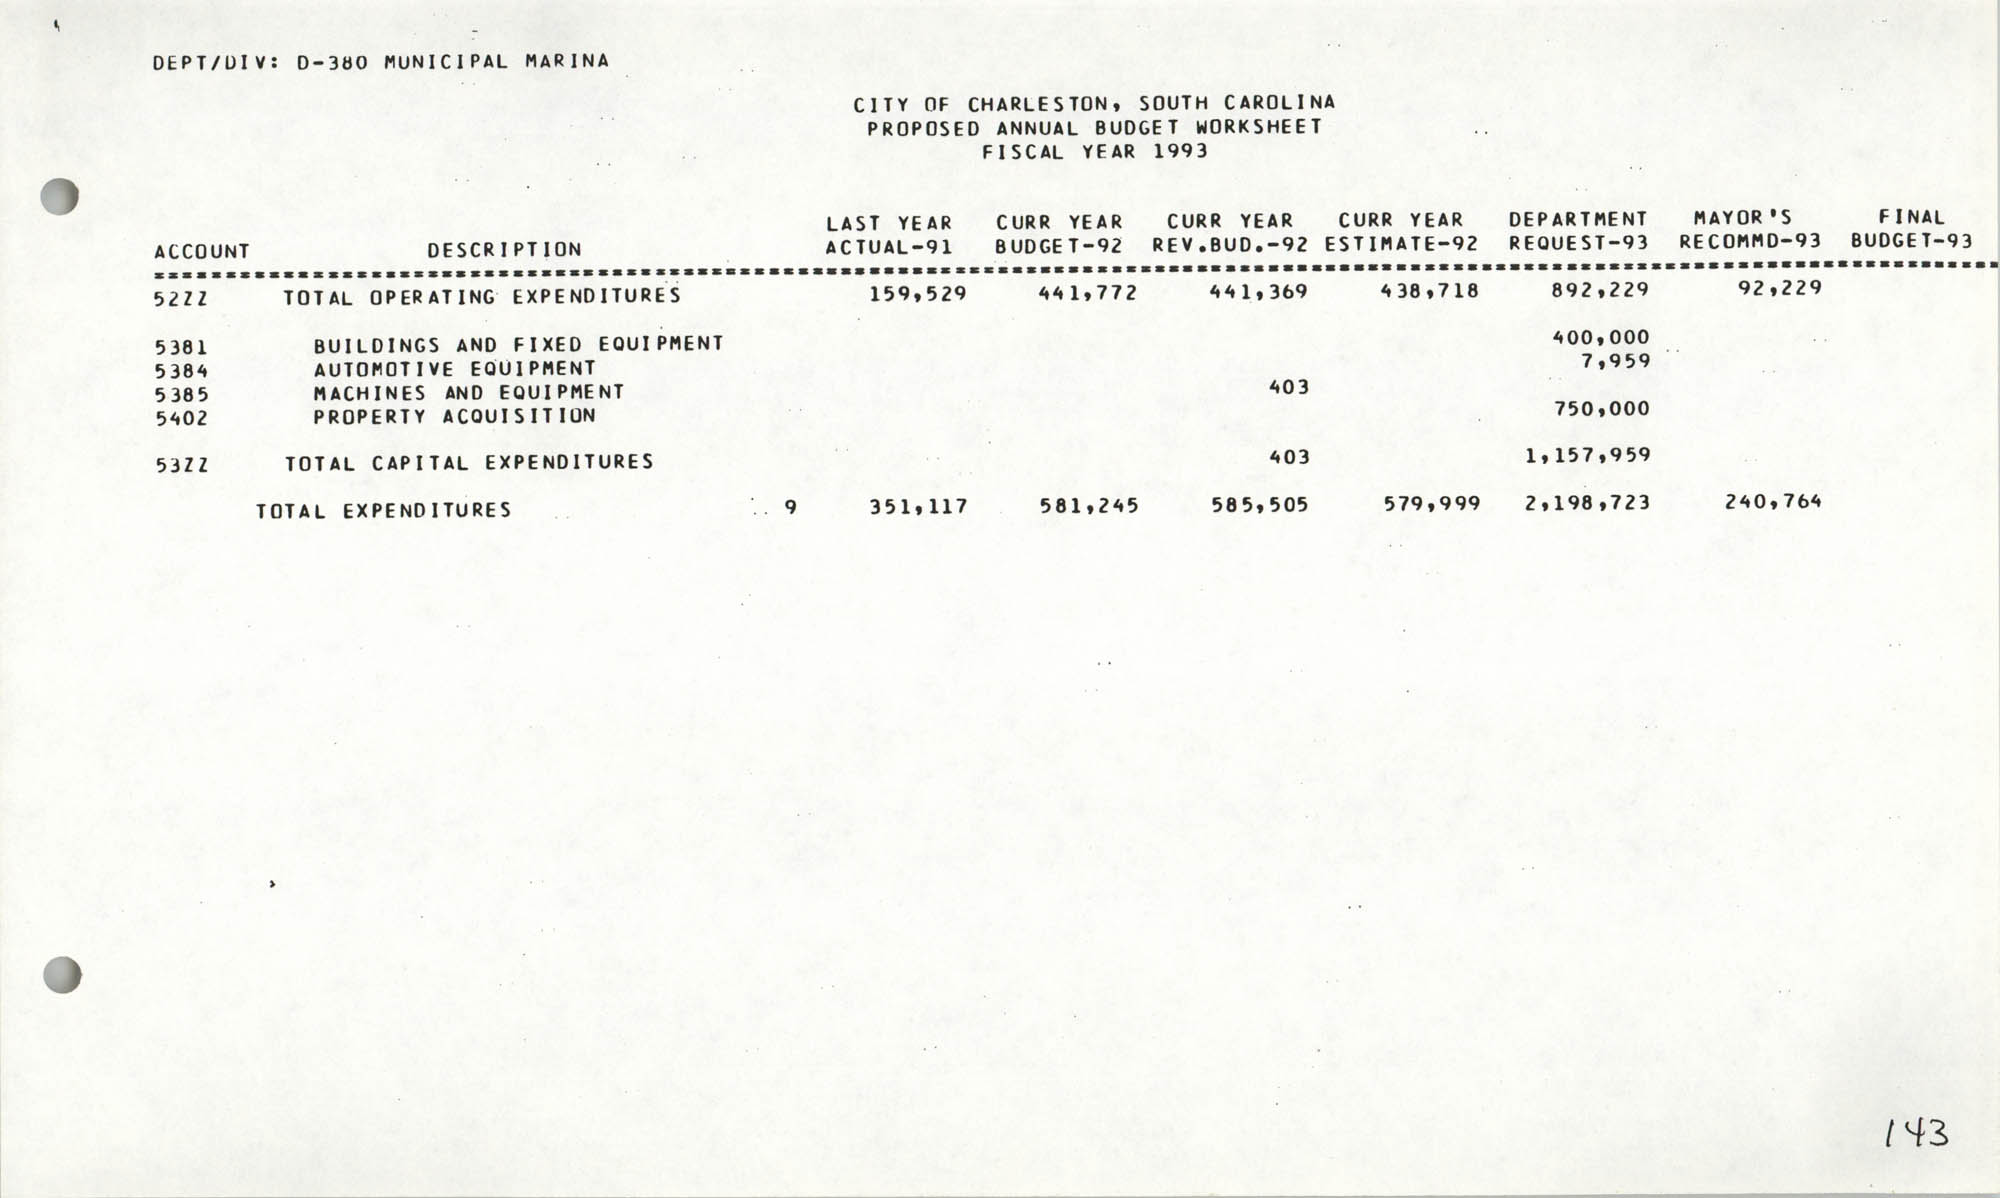 The City Council of Charleston, South Carolina, 1993 Budget, Page 143